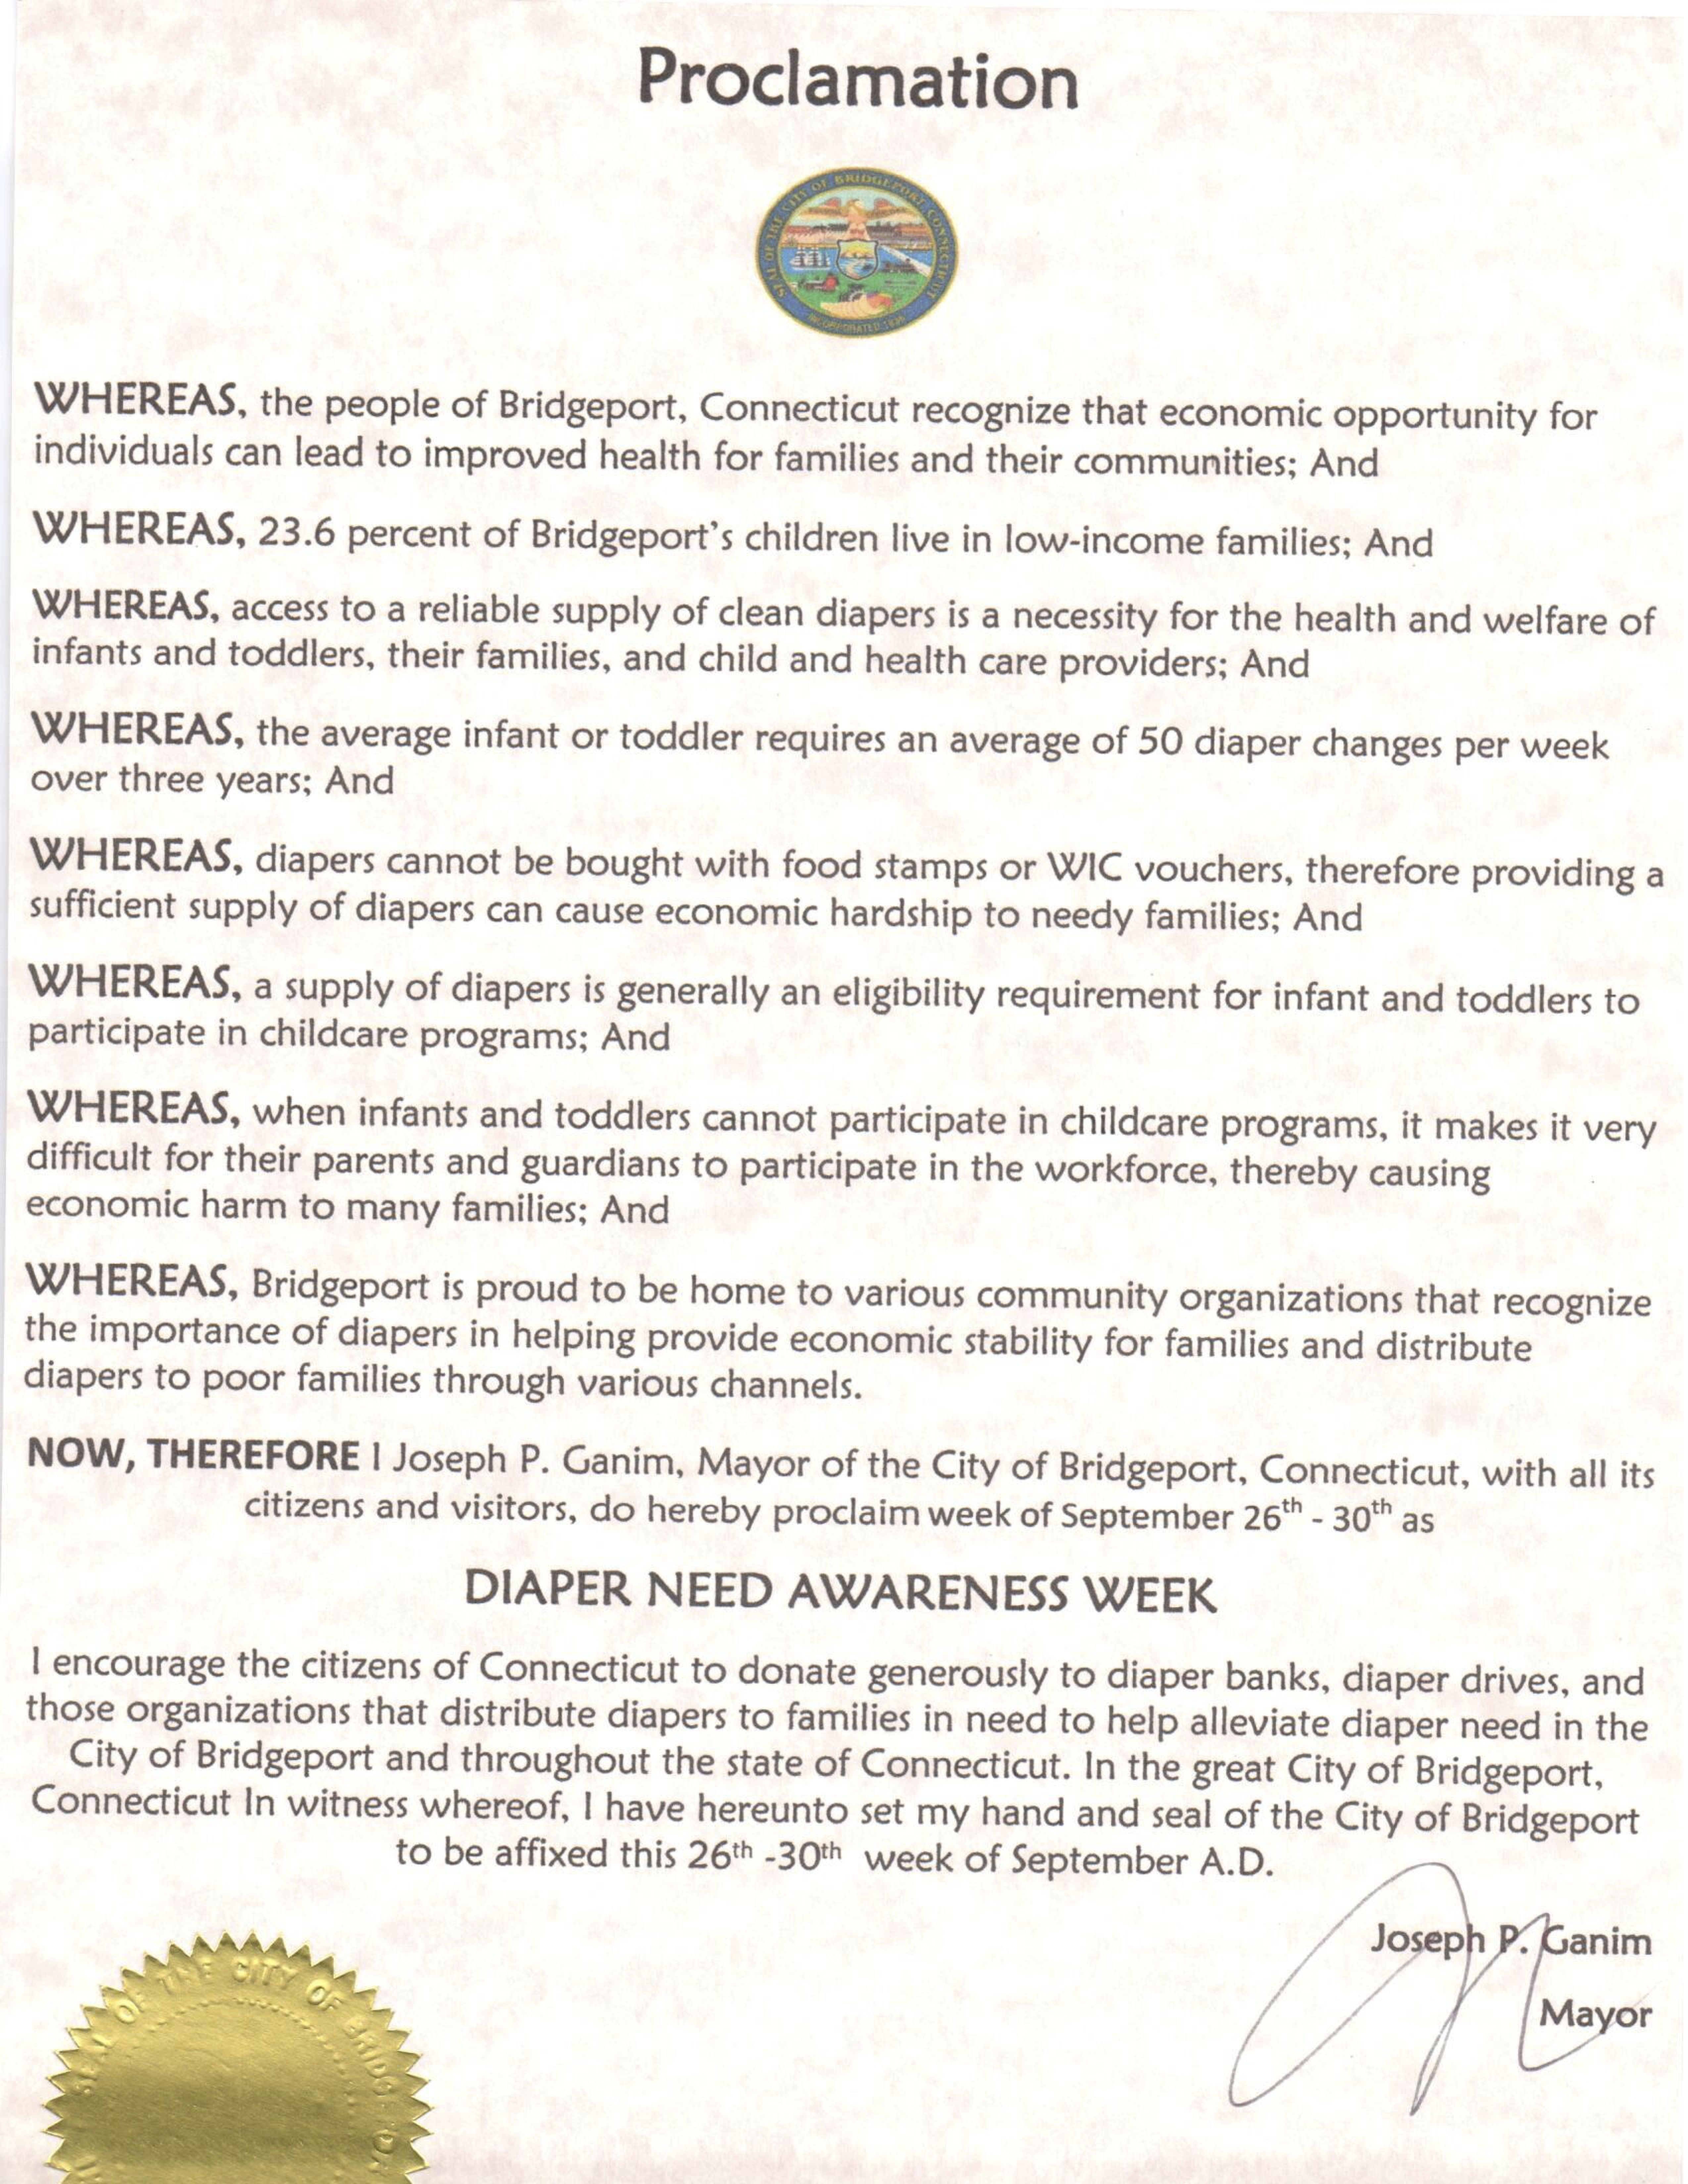 Bridgeport, CT - Mayoral proclamation recognizing Diaper Need Awareness Week (Sept. 26 - Oct. 2, 2016) #DiaperNeed www.diaperneed.org